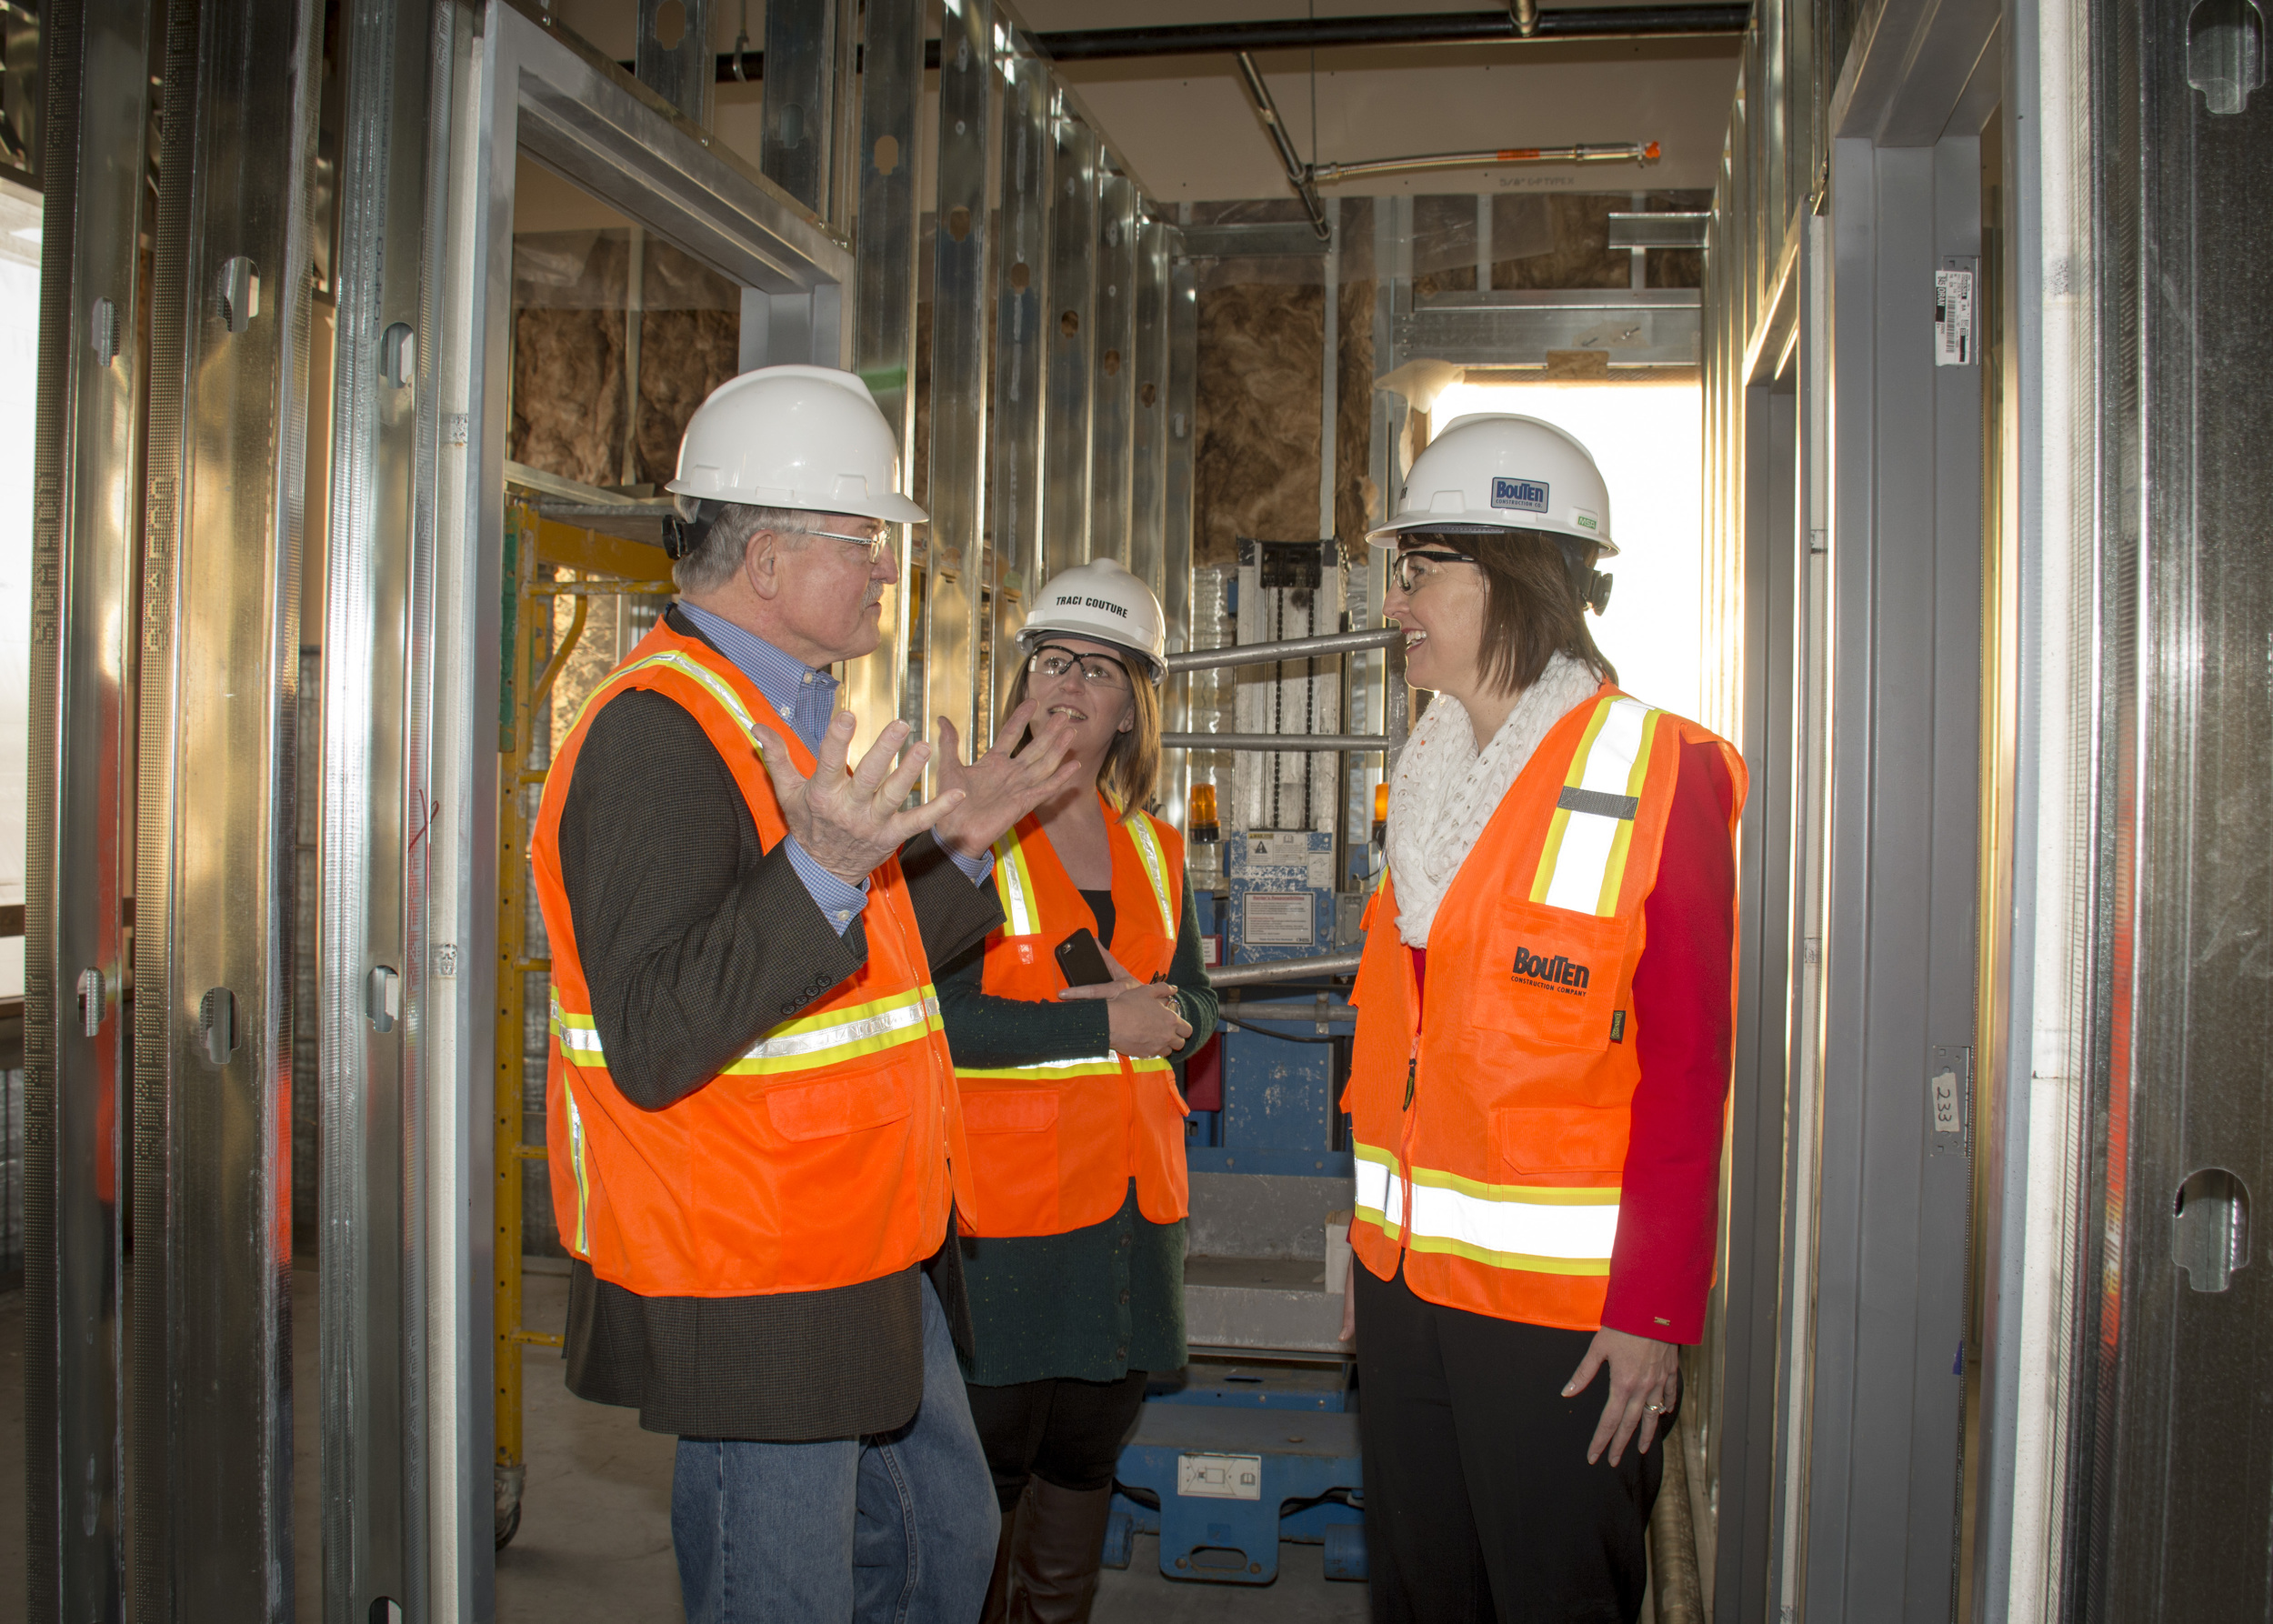 1-congresswoman-cathy-mcmorris-rodgers-visits-sthc-construction_7_24549015055_o.jpg